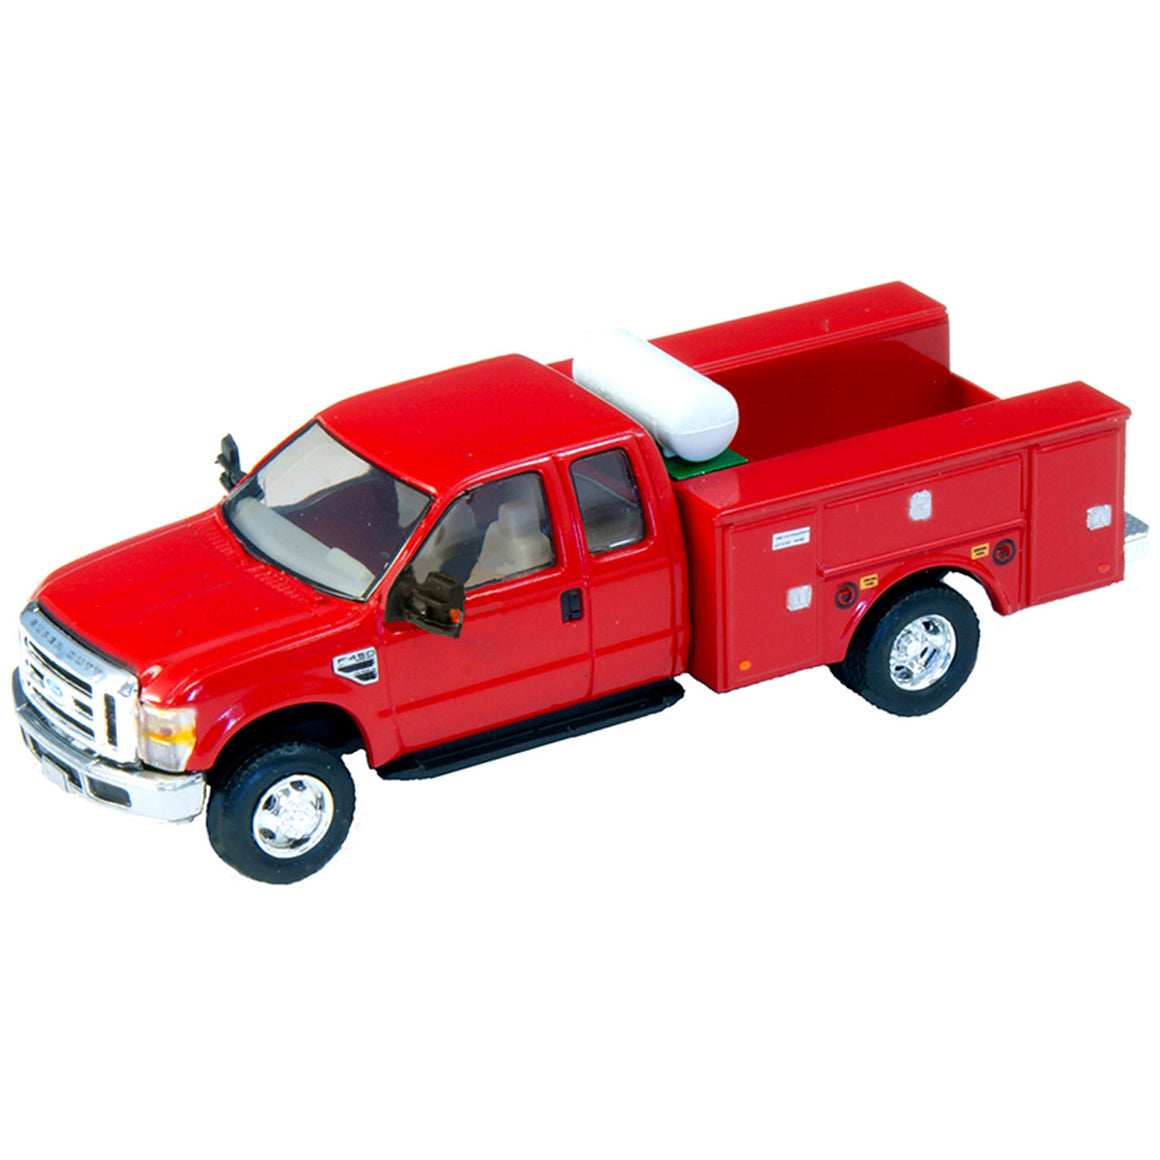 HO Scale: Lighted Ford F-450 Super Cab Fleet Service Truck - Red